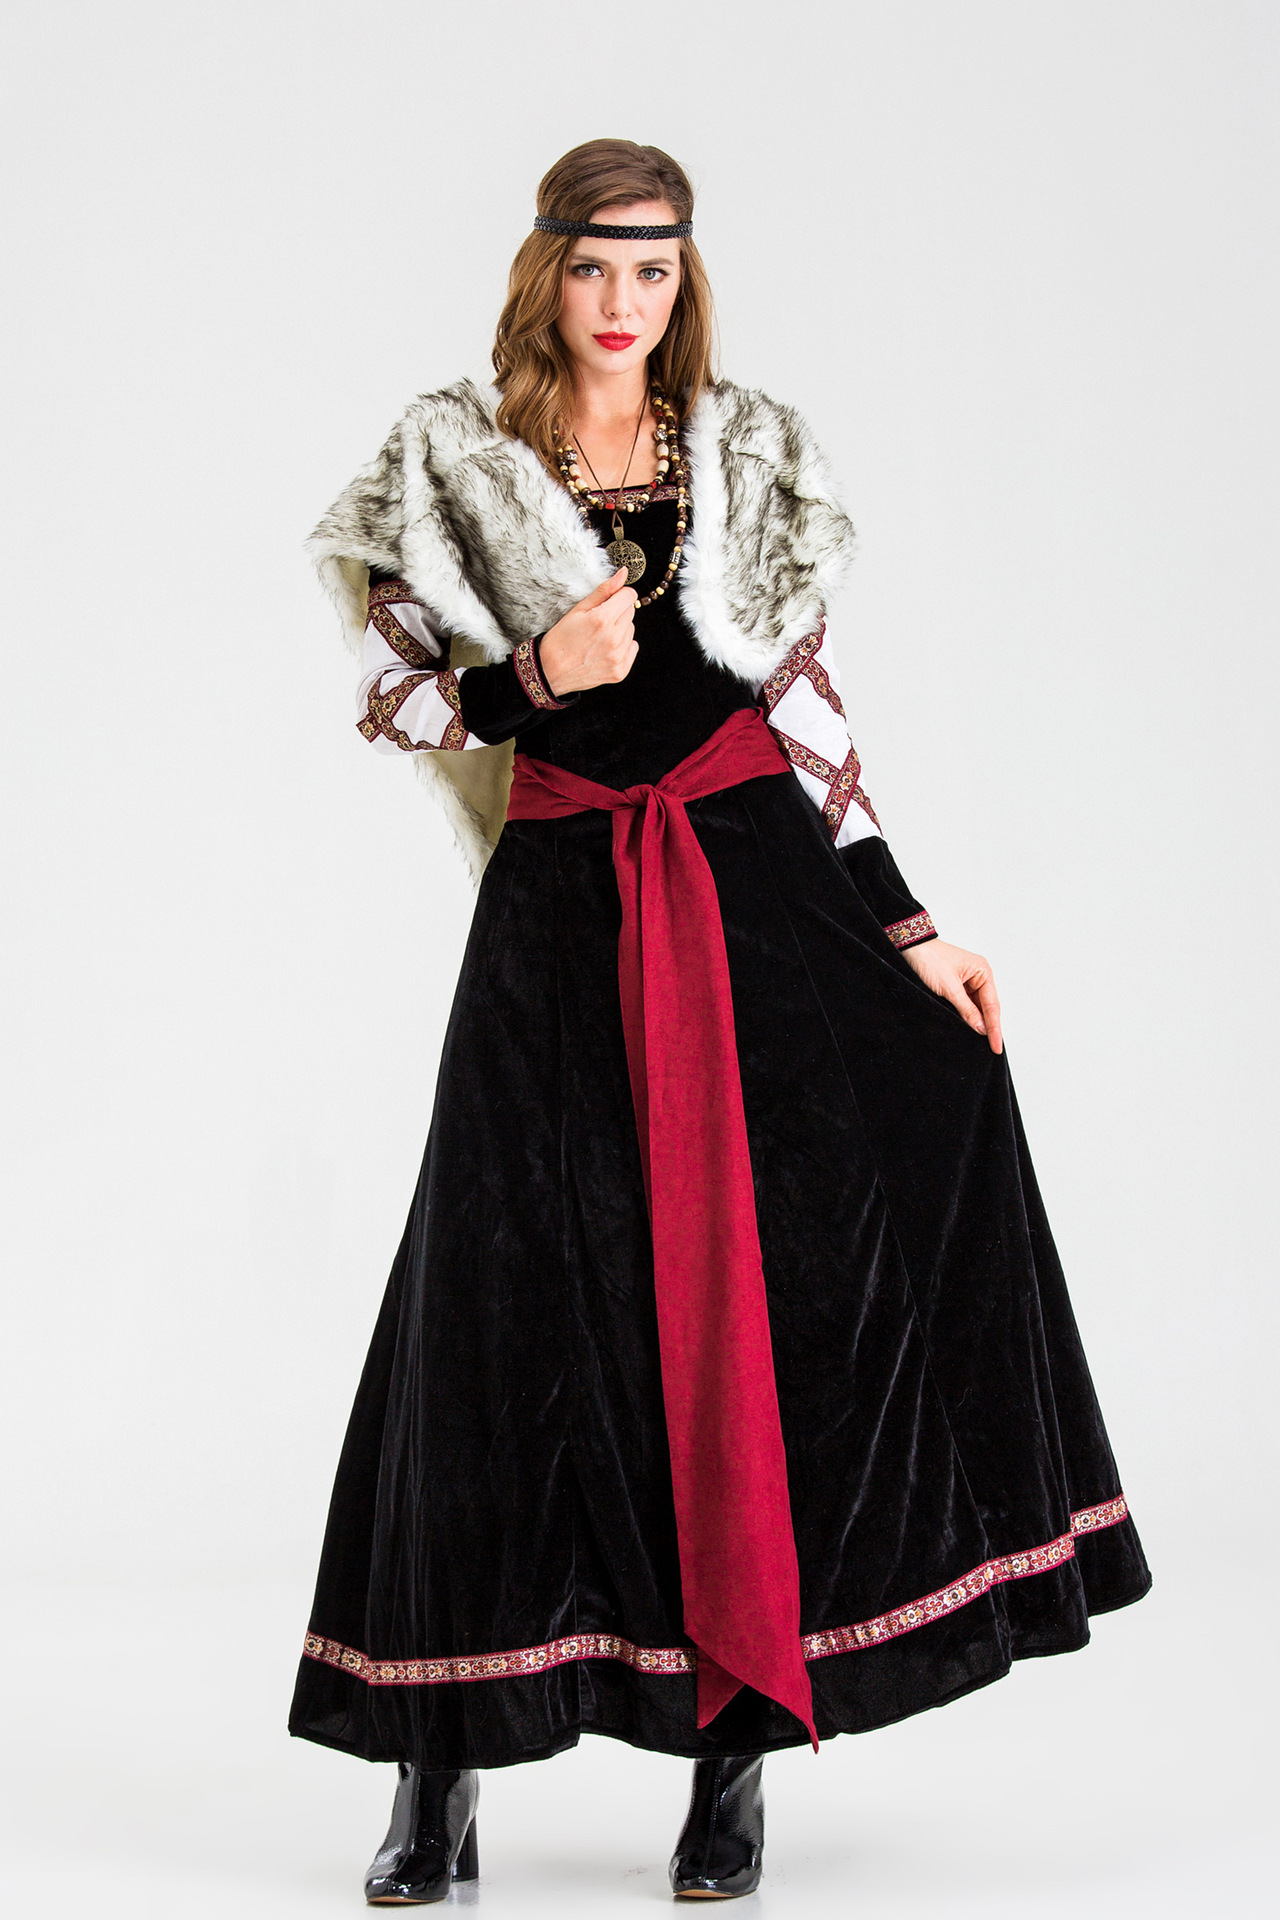 Pirate Cosplay role play costume savage Costume Halloween Adult warrior costume dress woman